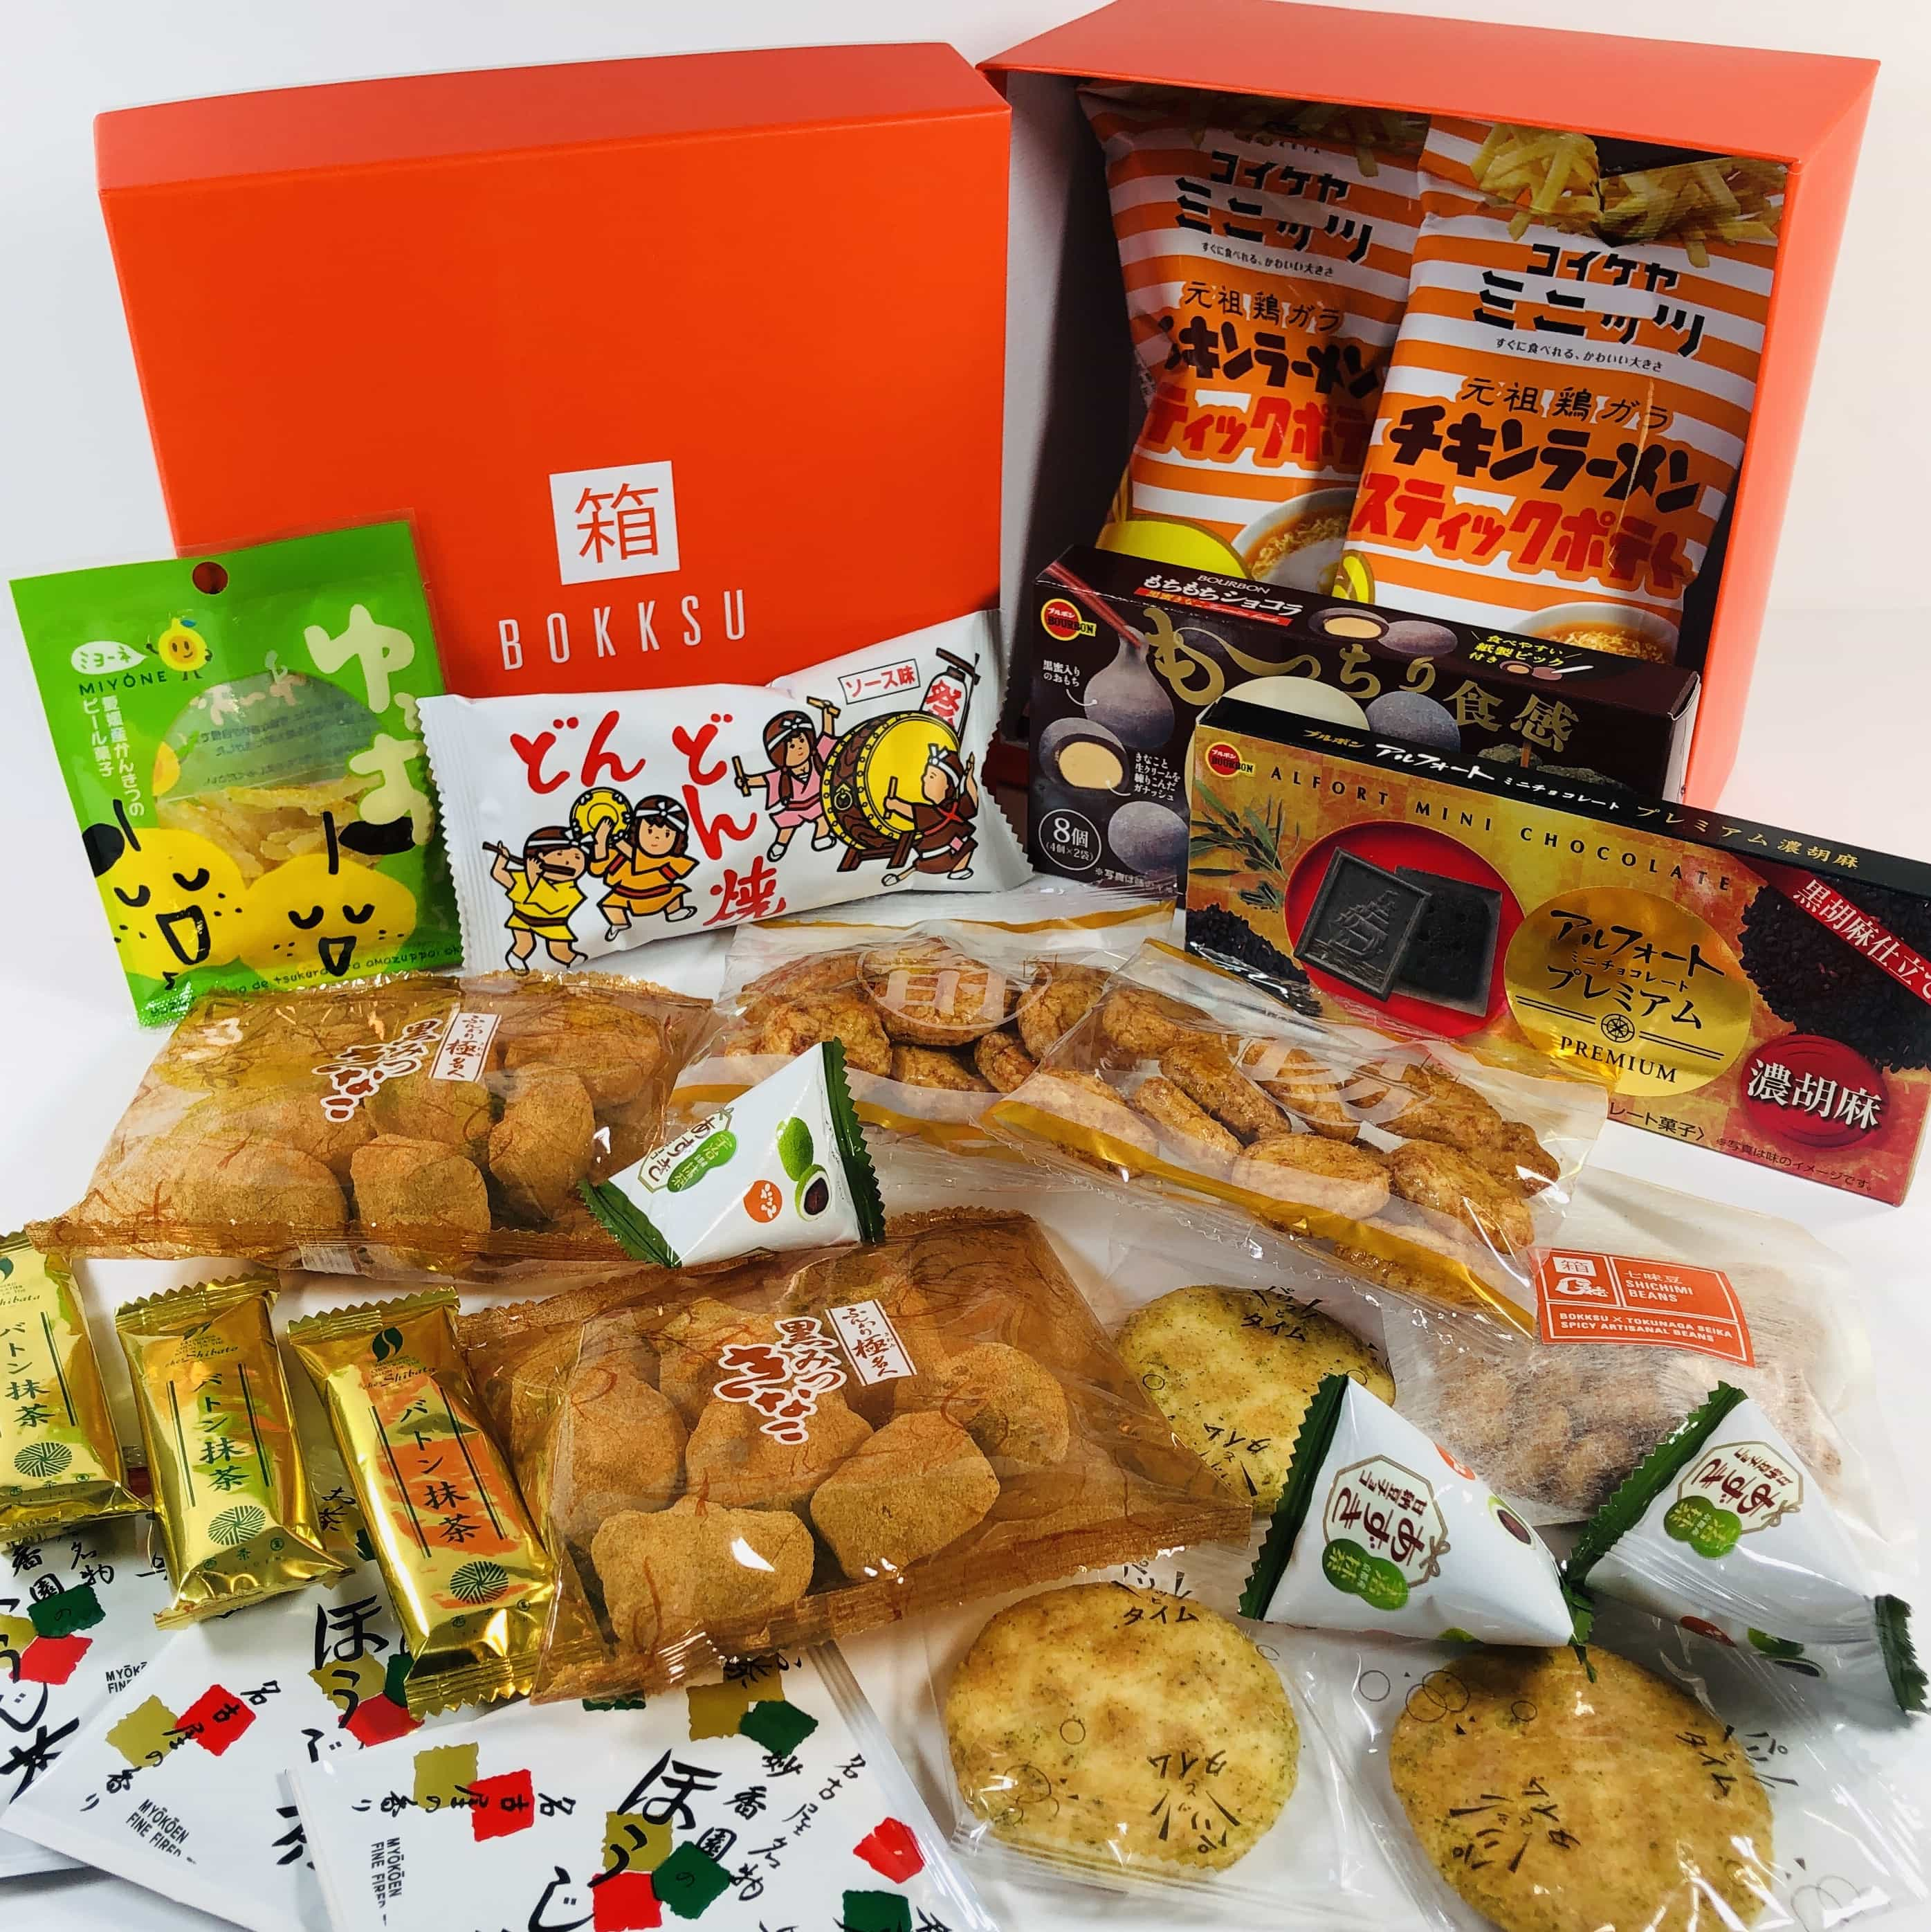 Bokksu June 2019 Subscription Box Review + Coupon